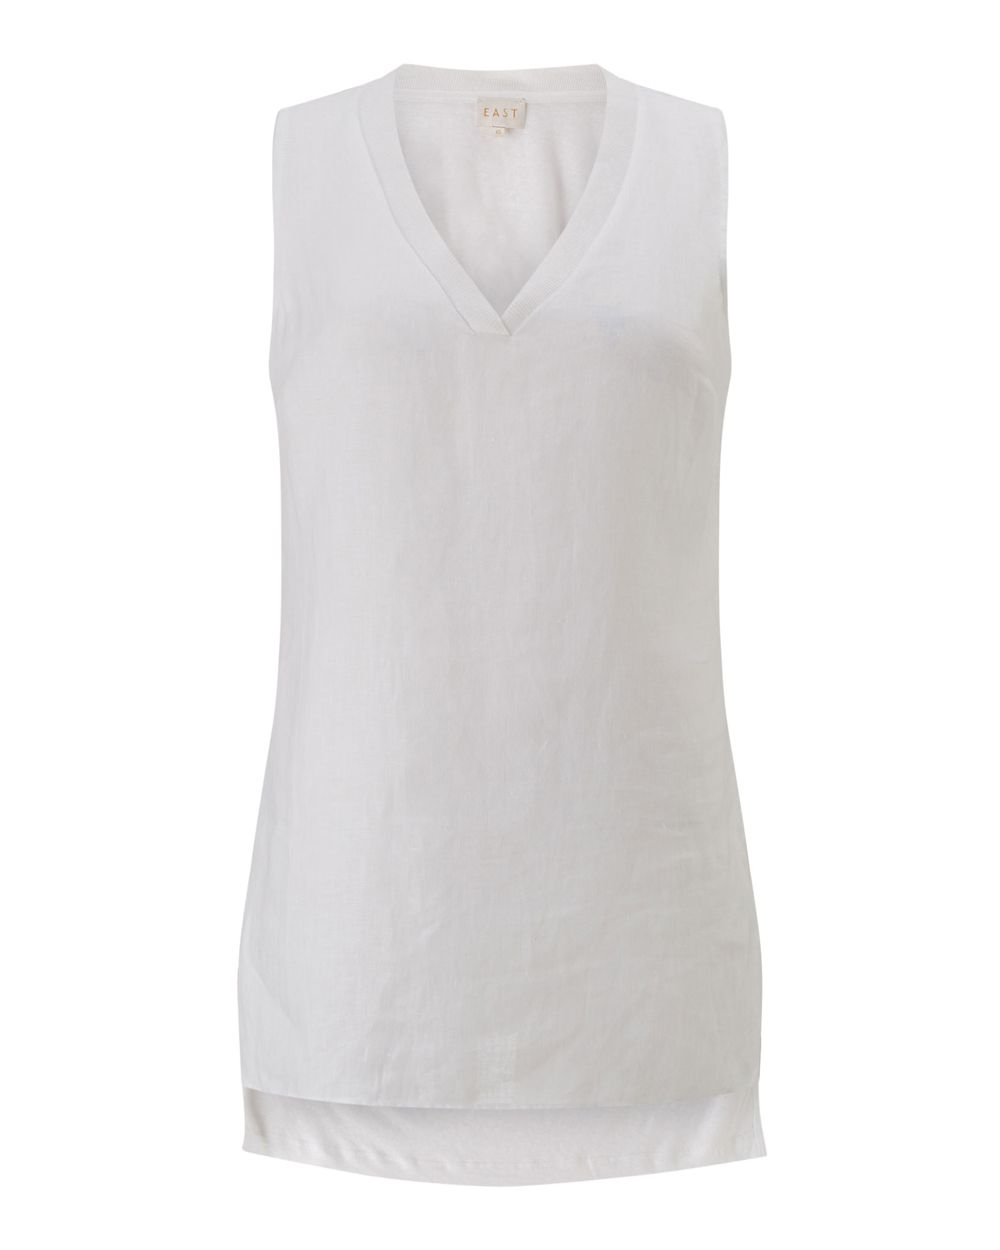 East V Neck Sleeveless Jersey, White